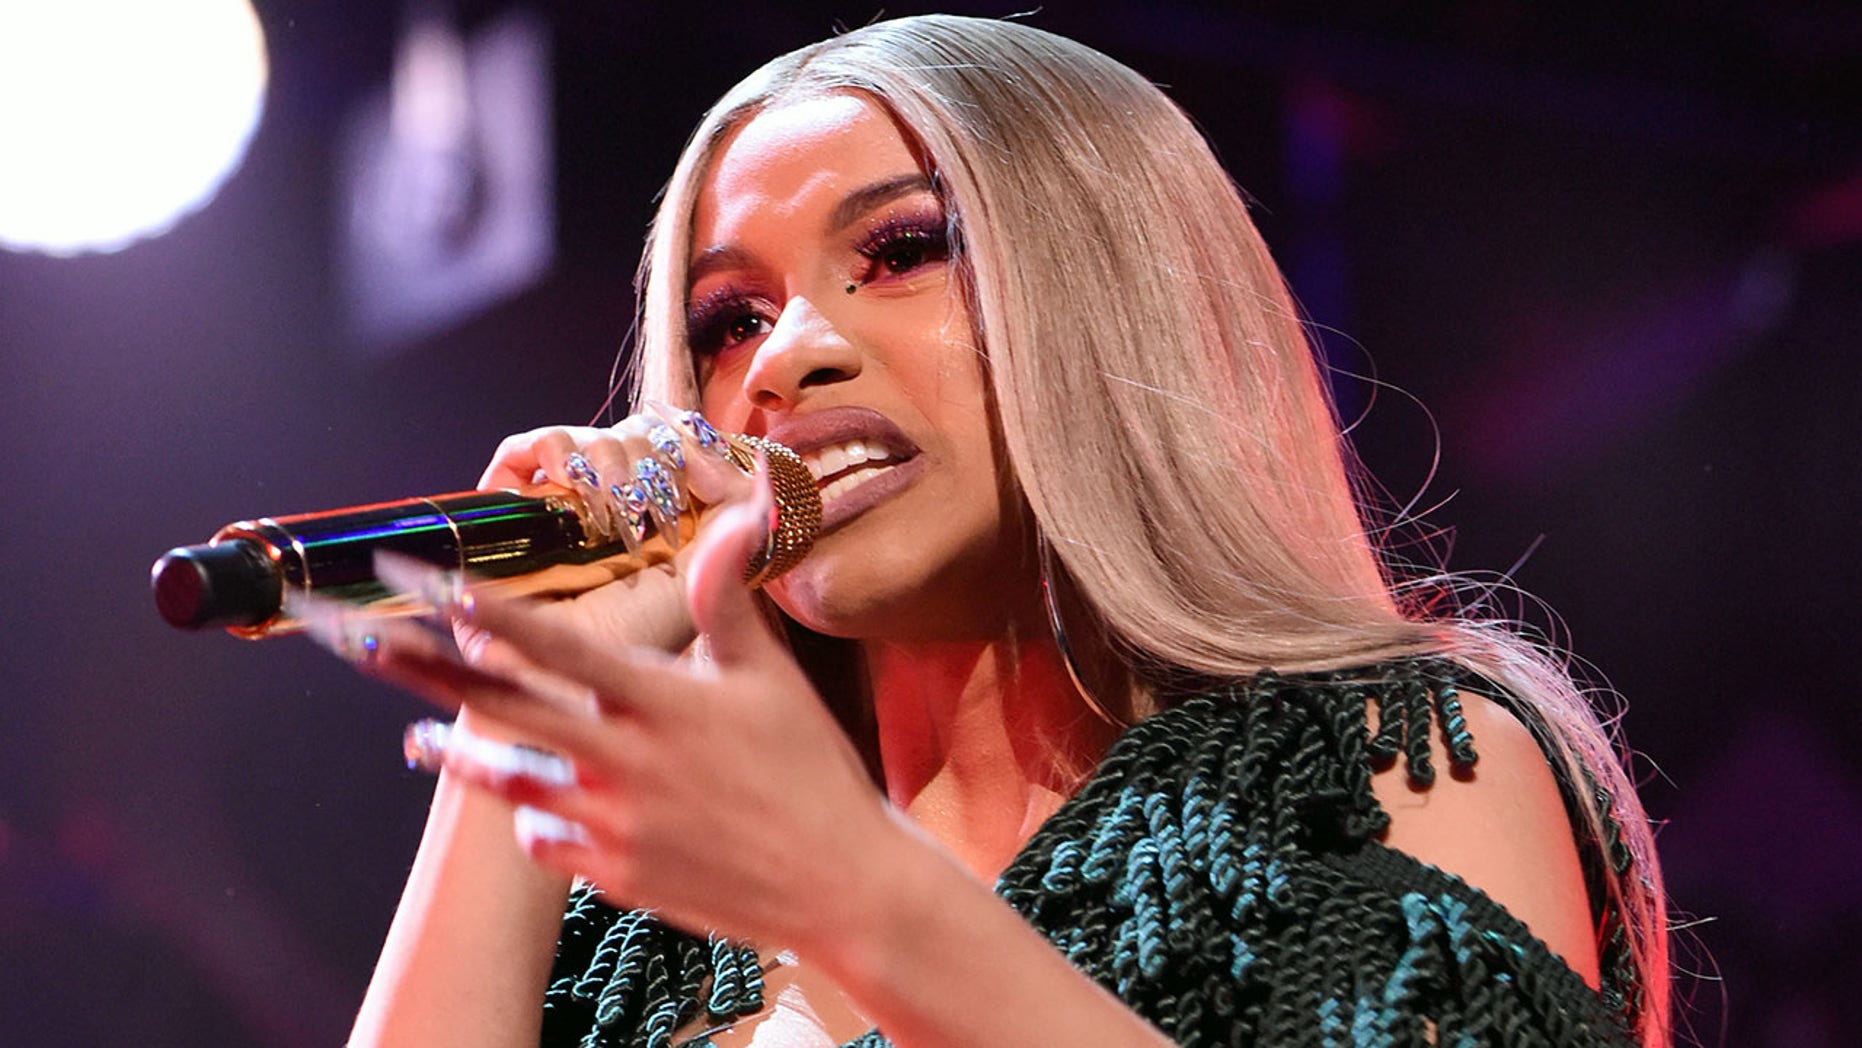 Cardi B Lashes Out About Harassment Pressures Of Fame In